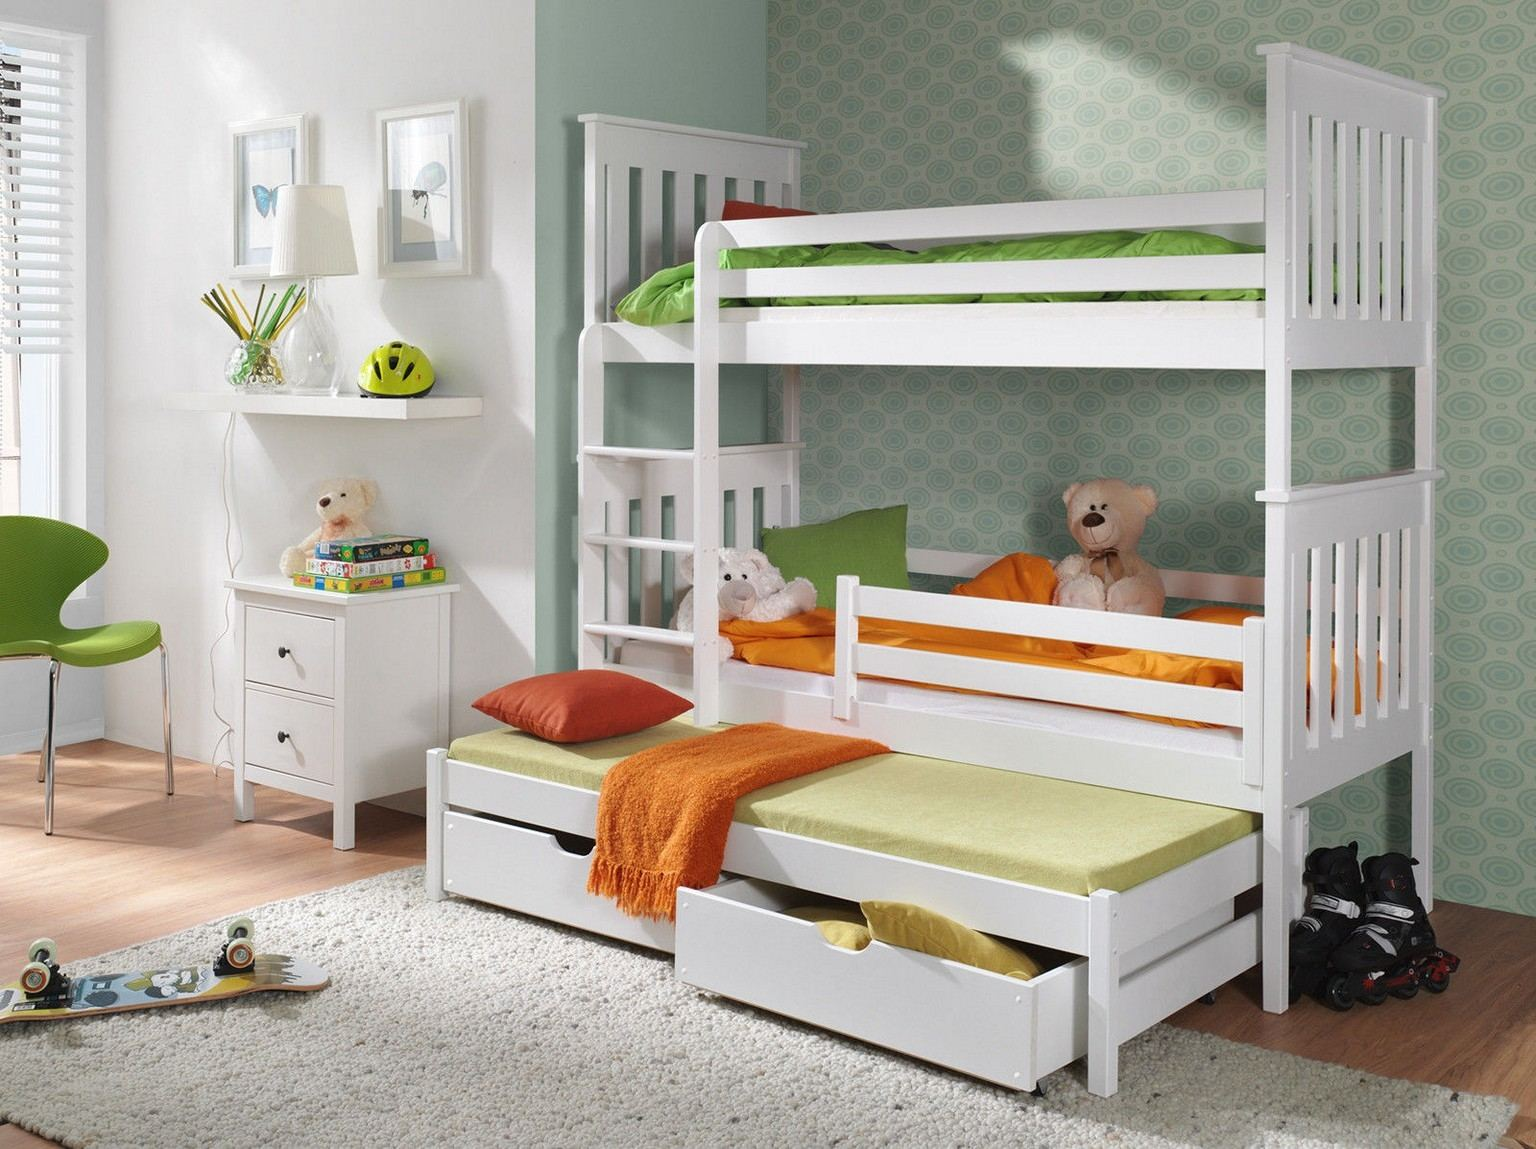 Clever Storage Ideas For Small Bedrooms Storage Ideas For Small Bedrooms On  A Budget Below Are